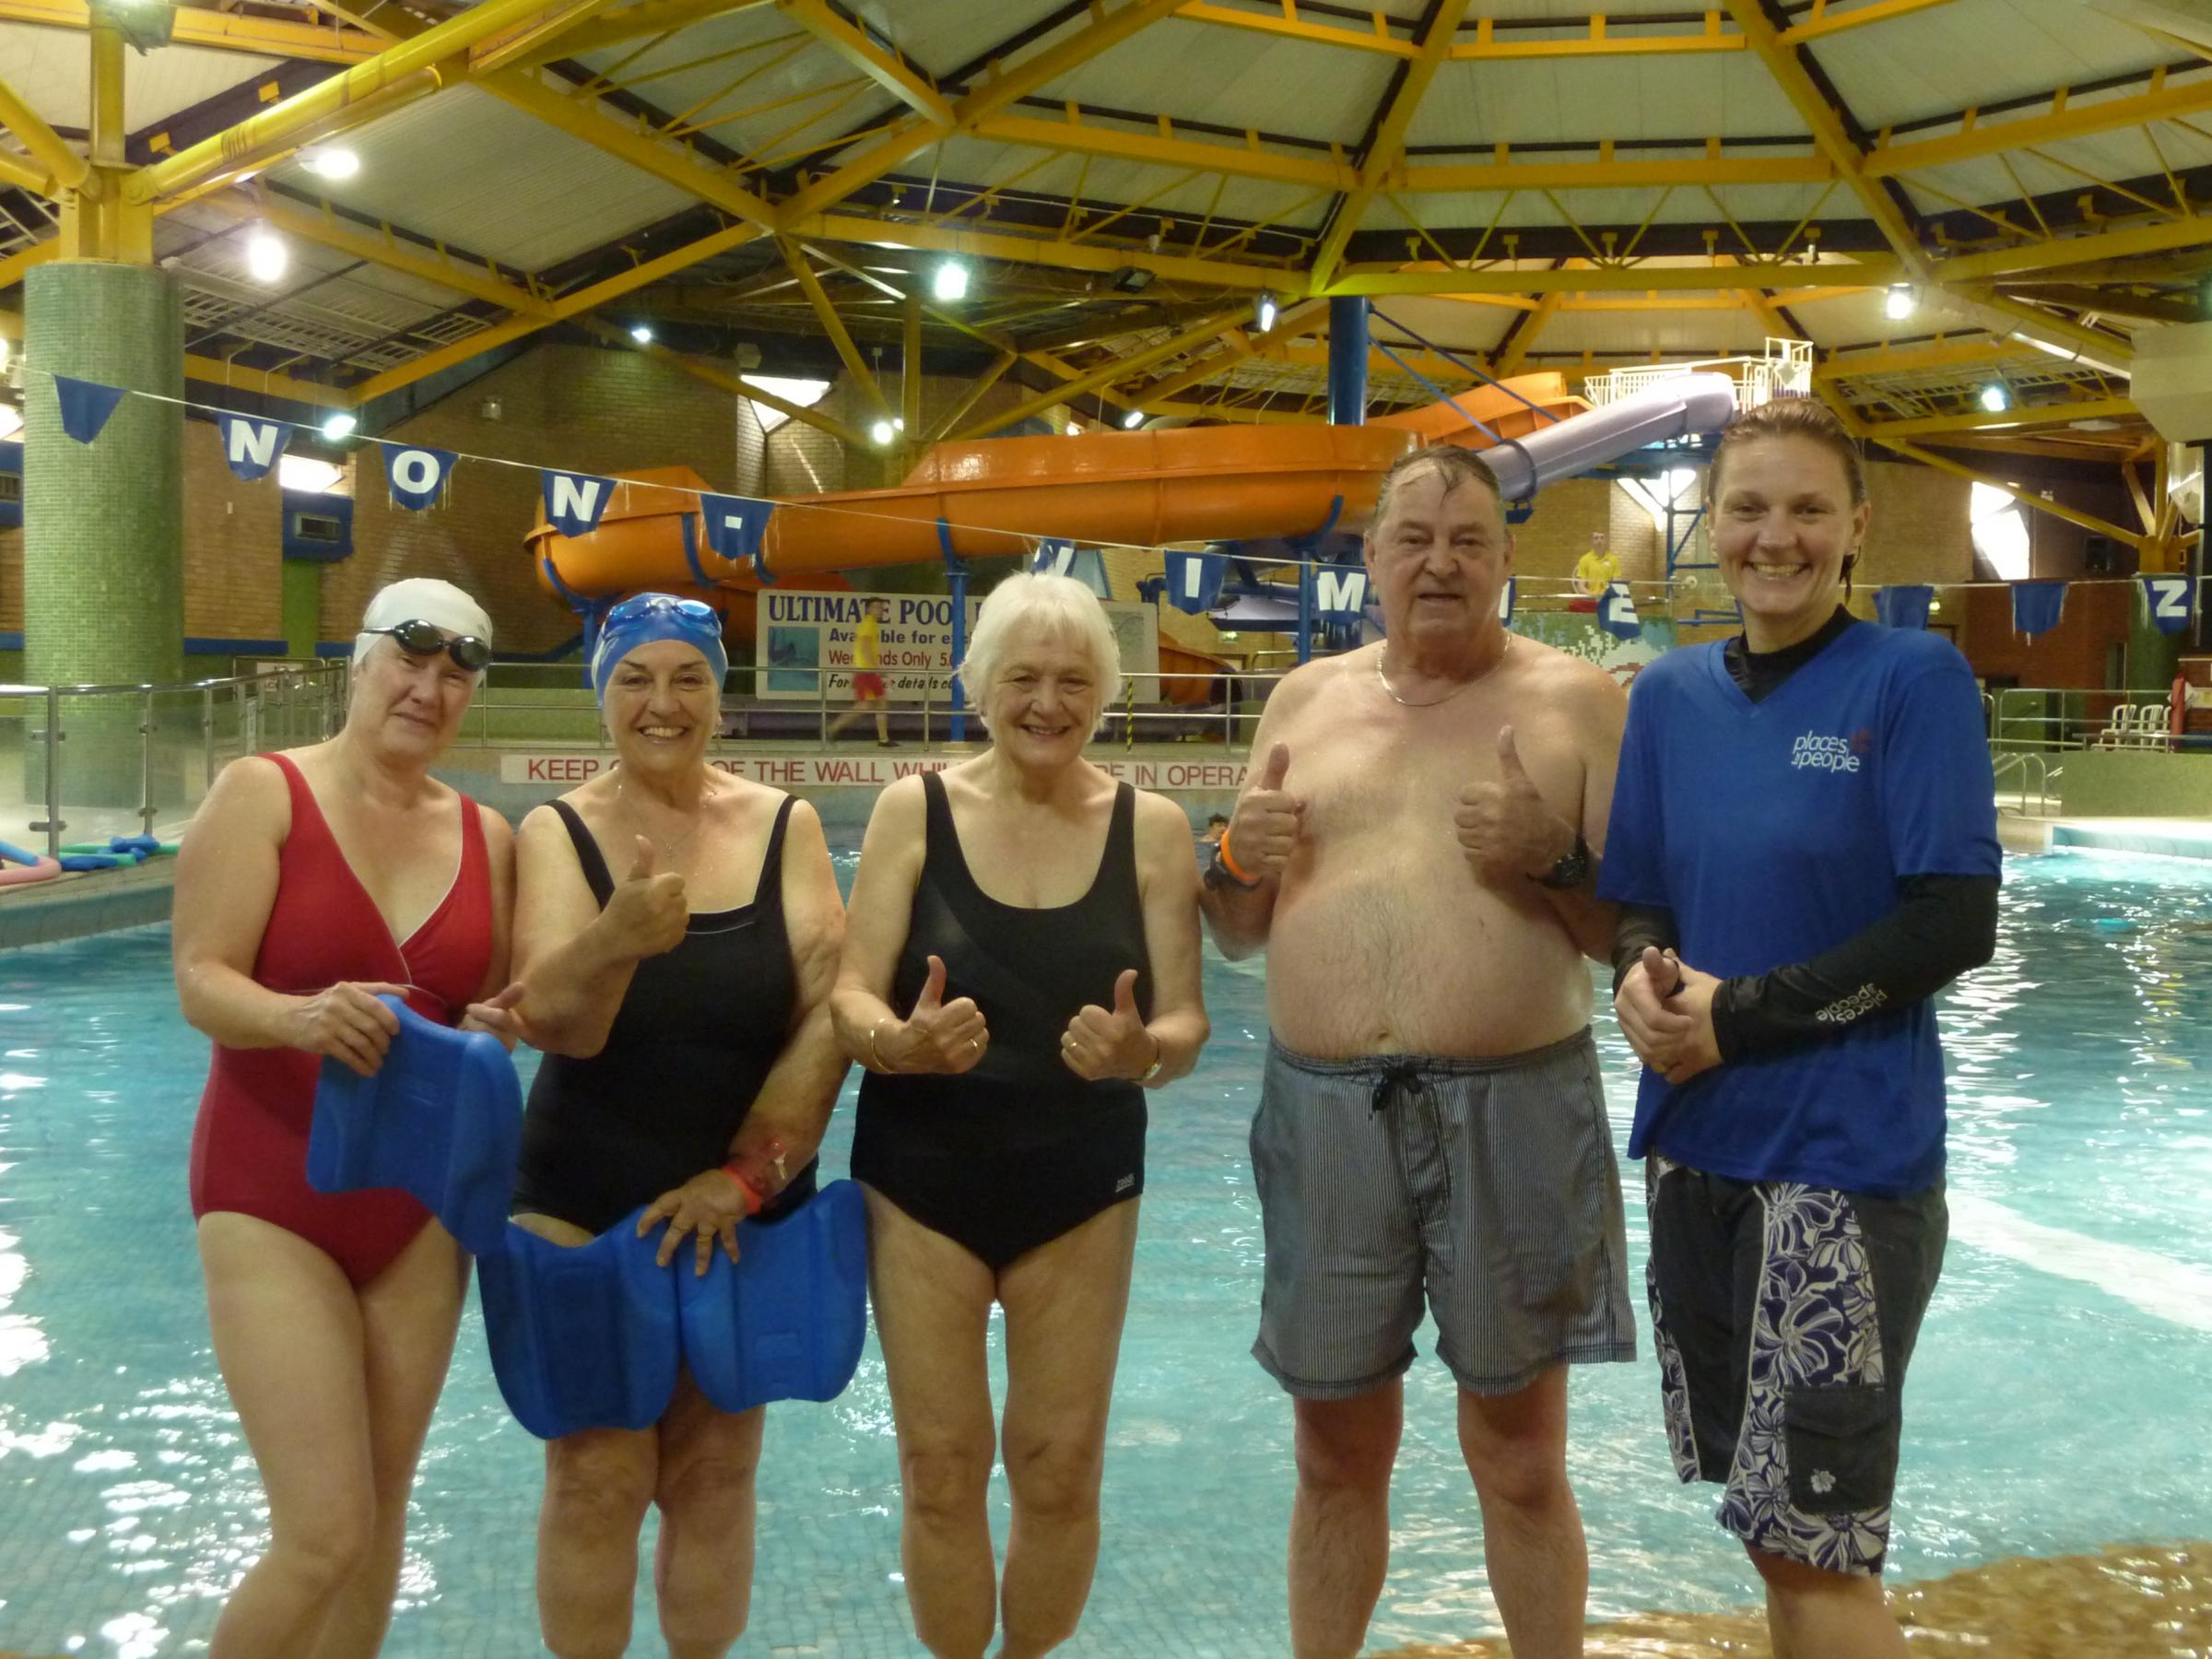 MAKING A SPLASH: Keen swimmers, from left, Julie Byford, Meg Kent, Anne Hingley, Trevor Edwards and Vanessa Babbington at the Glades Leisure Centre.